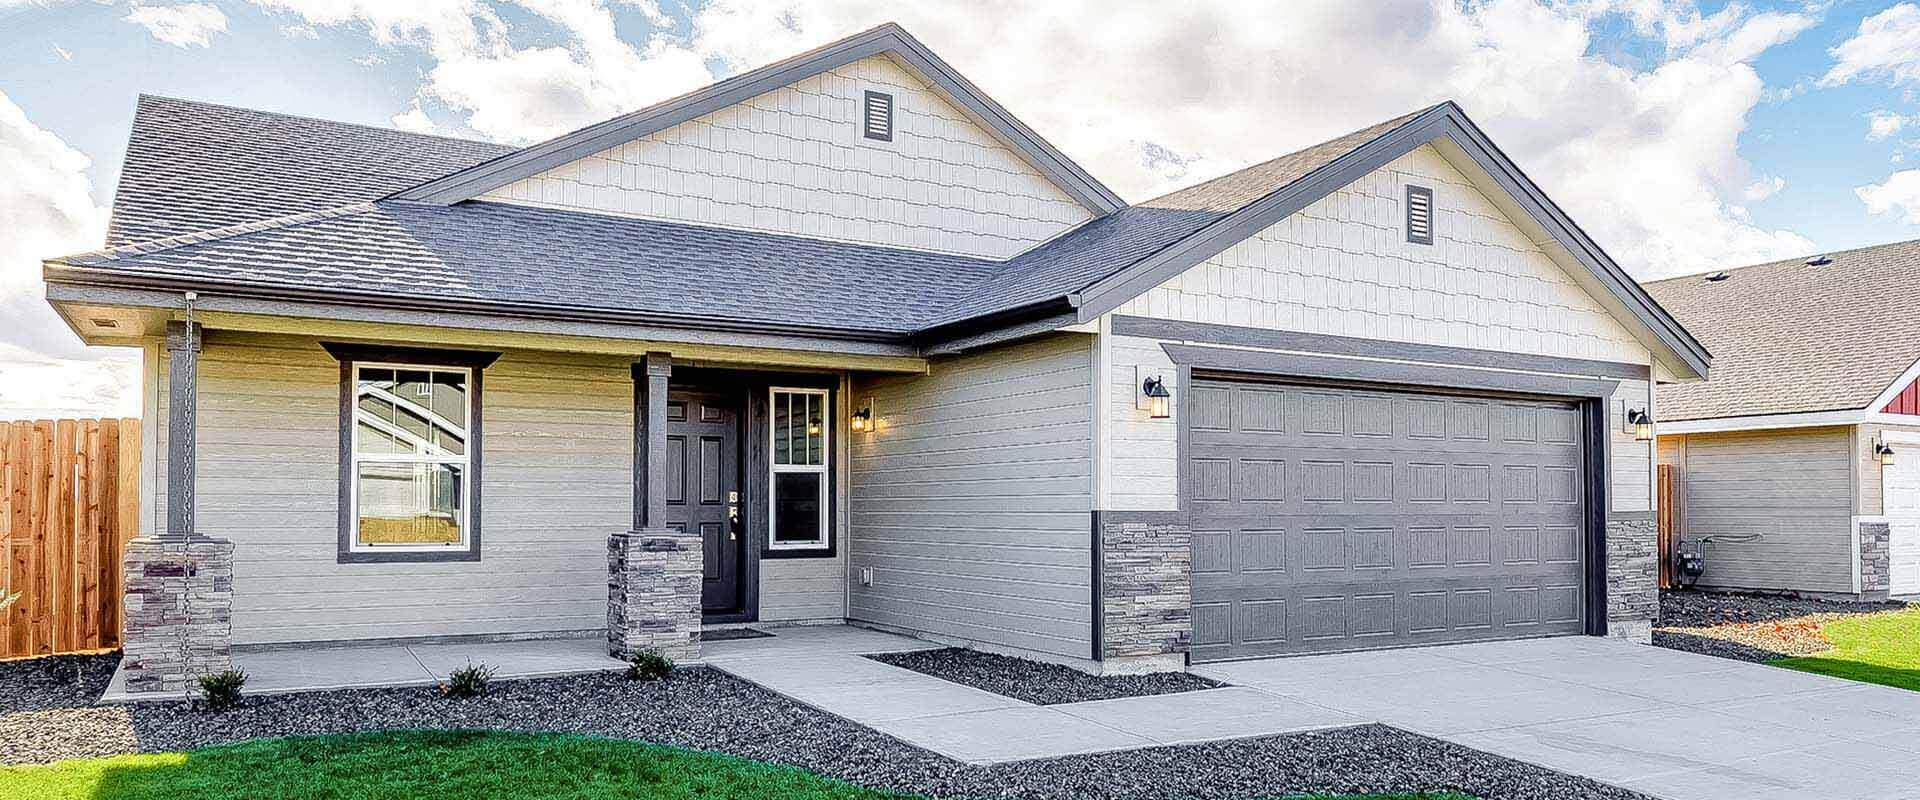 New_Homes_and_Communities_Boise_Idaho_Hubble_Homes_0031.jpg